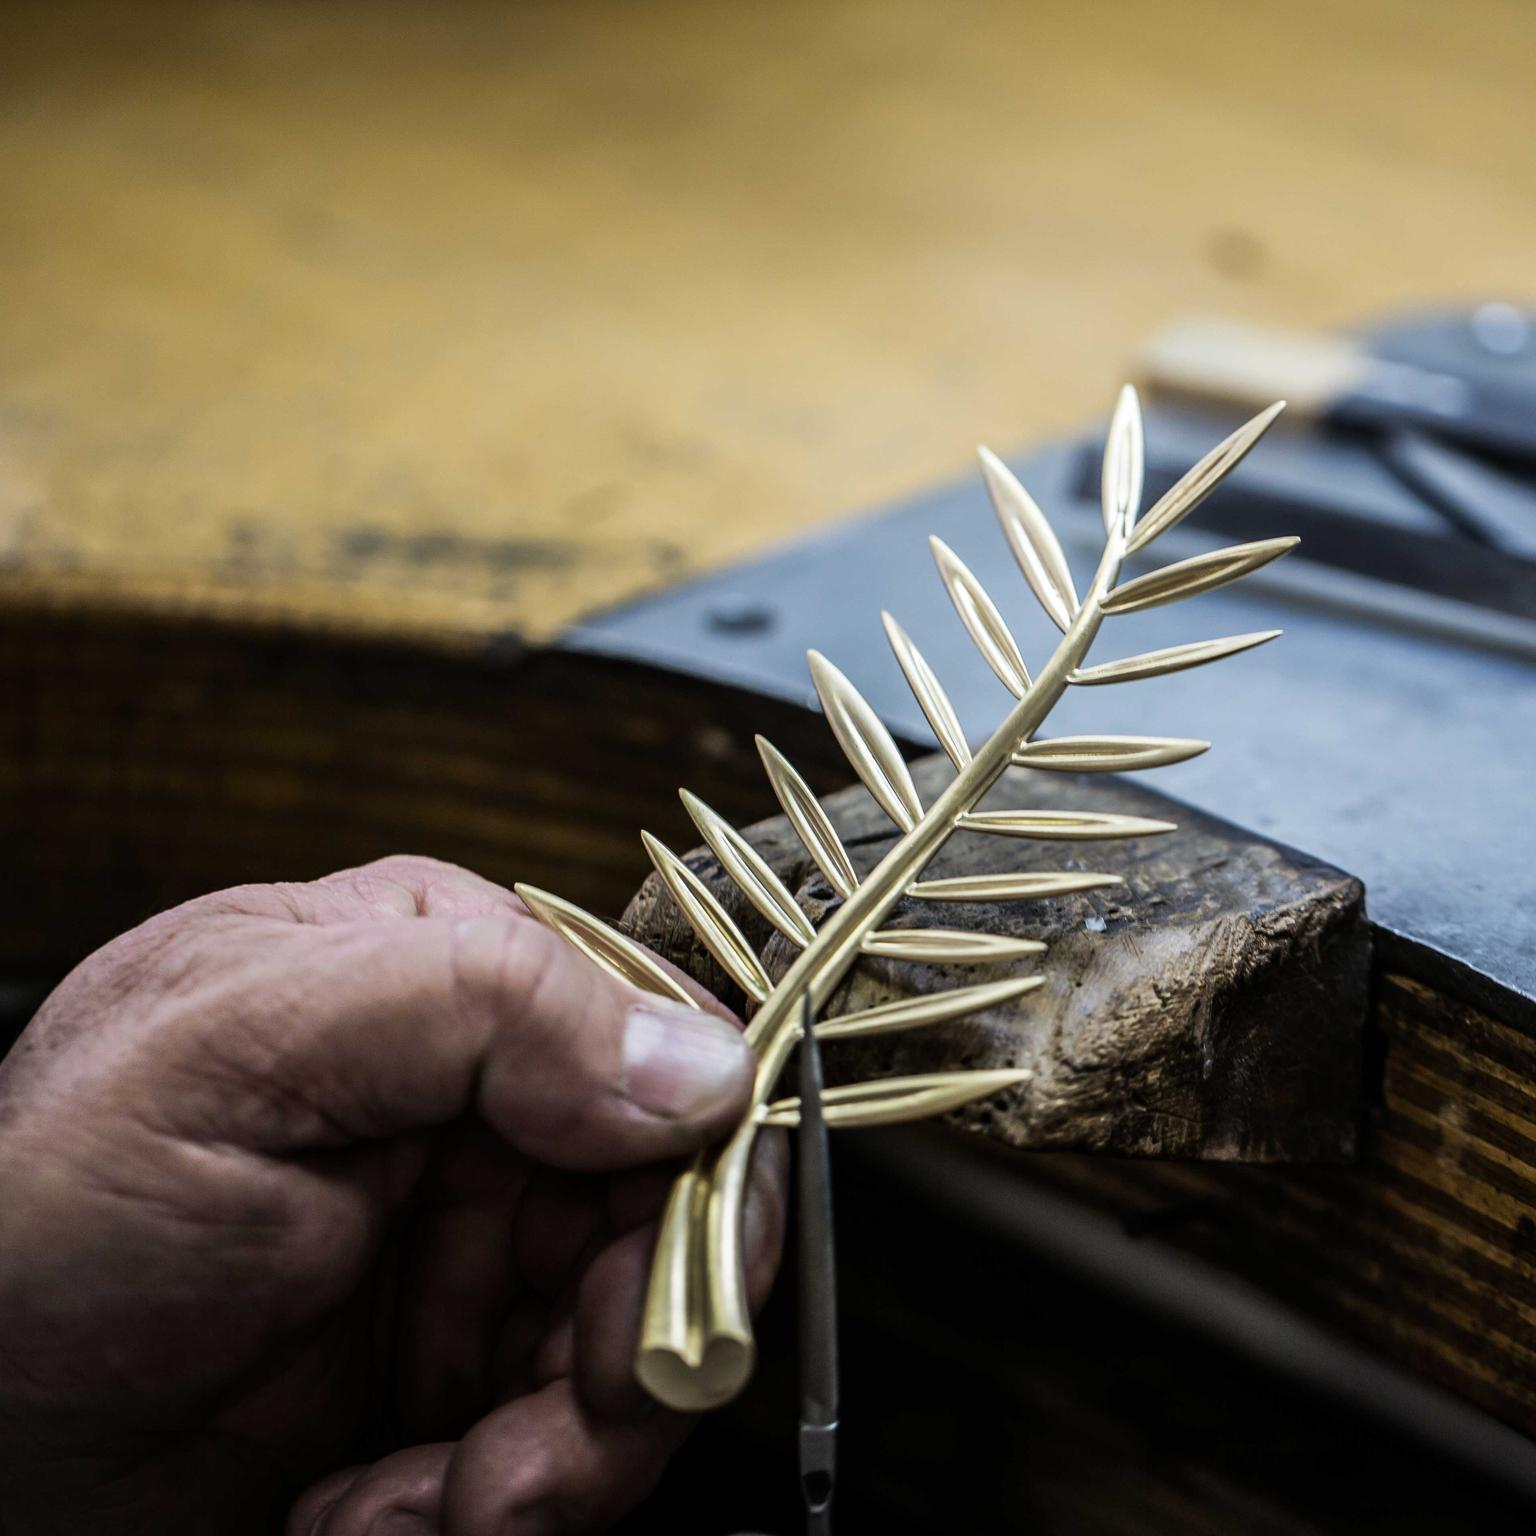 Work on the Cannes Golden Palm award created by Chopard each year in Fairmined Gold